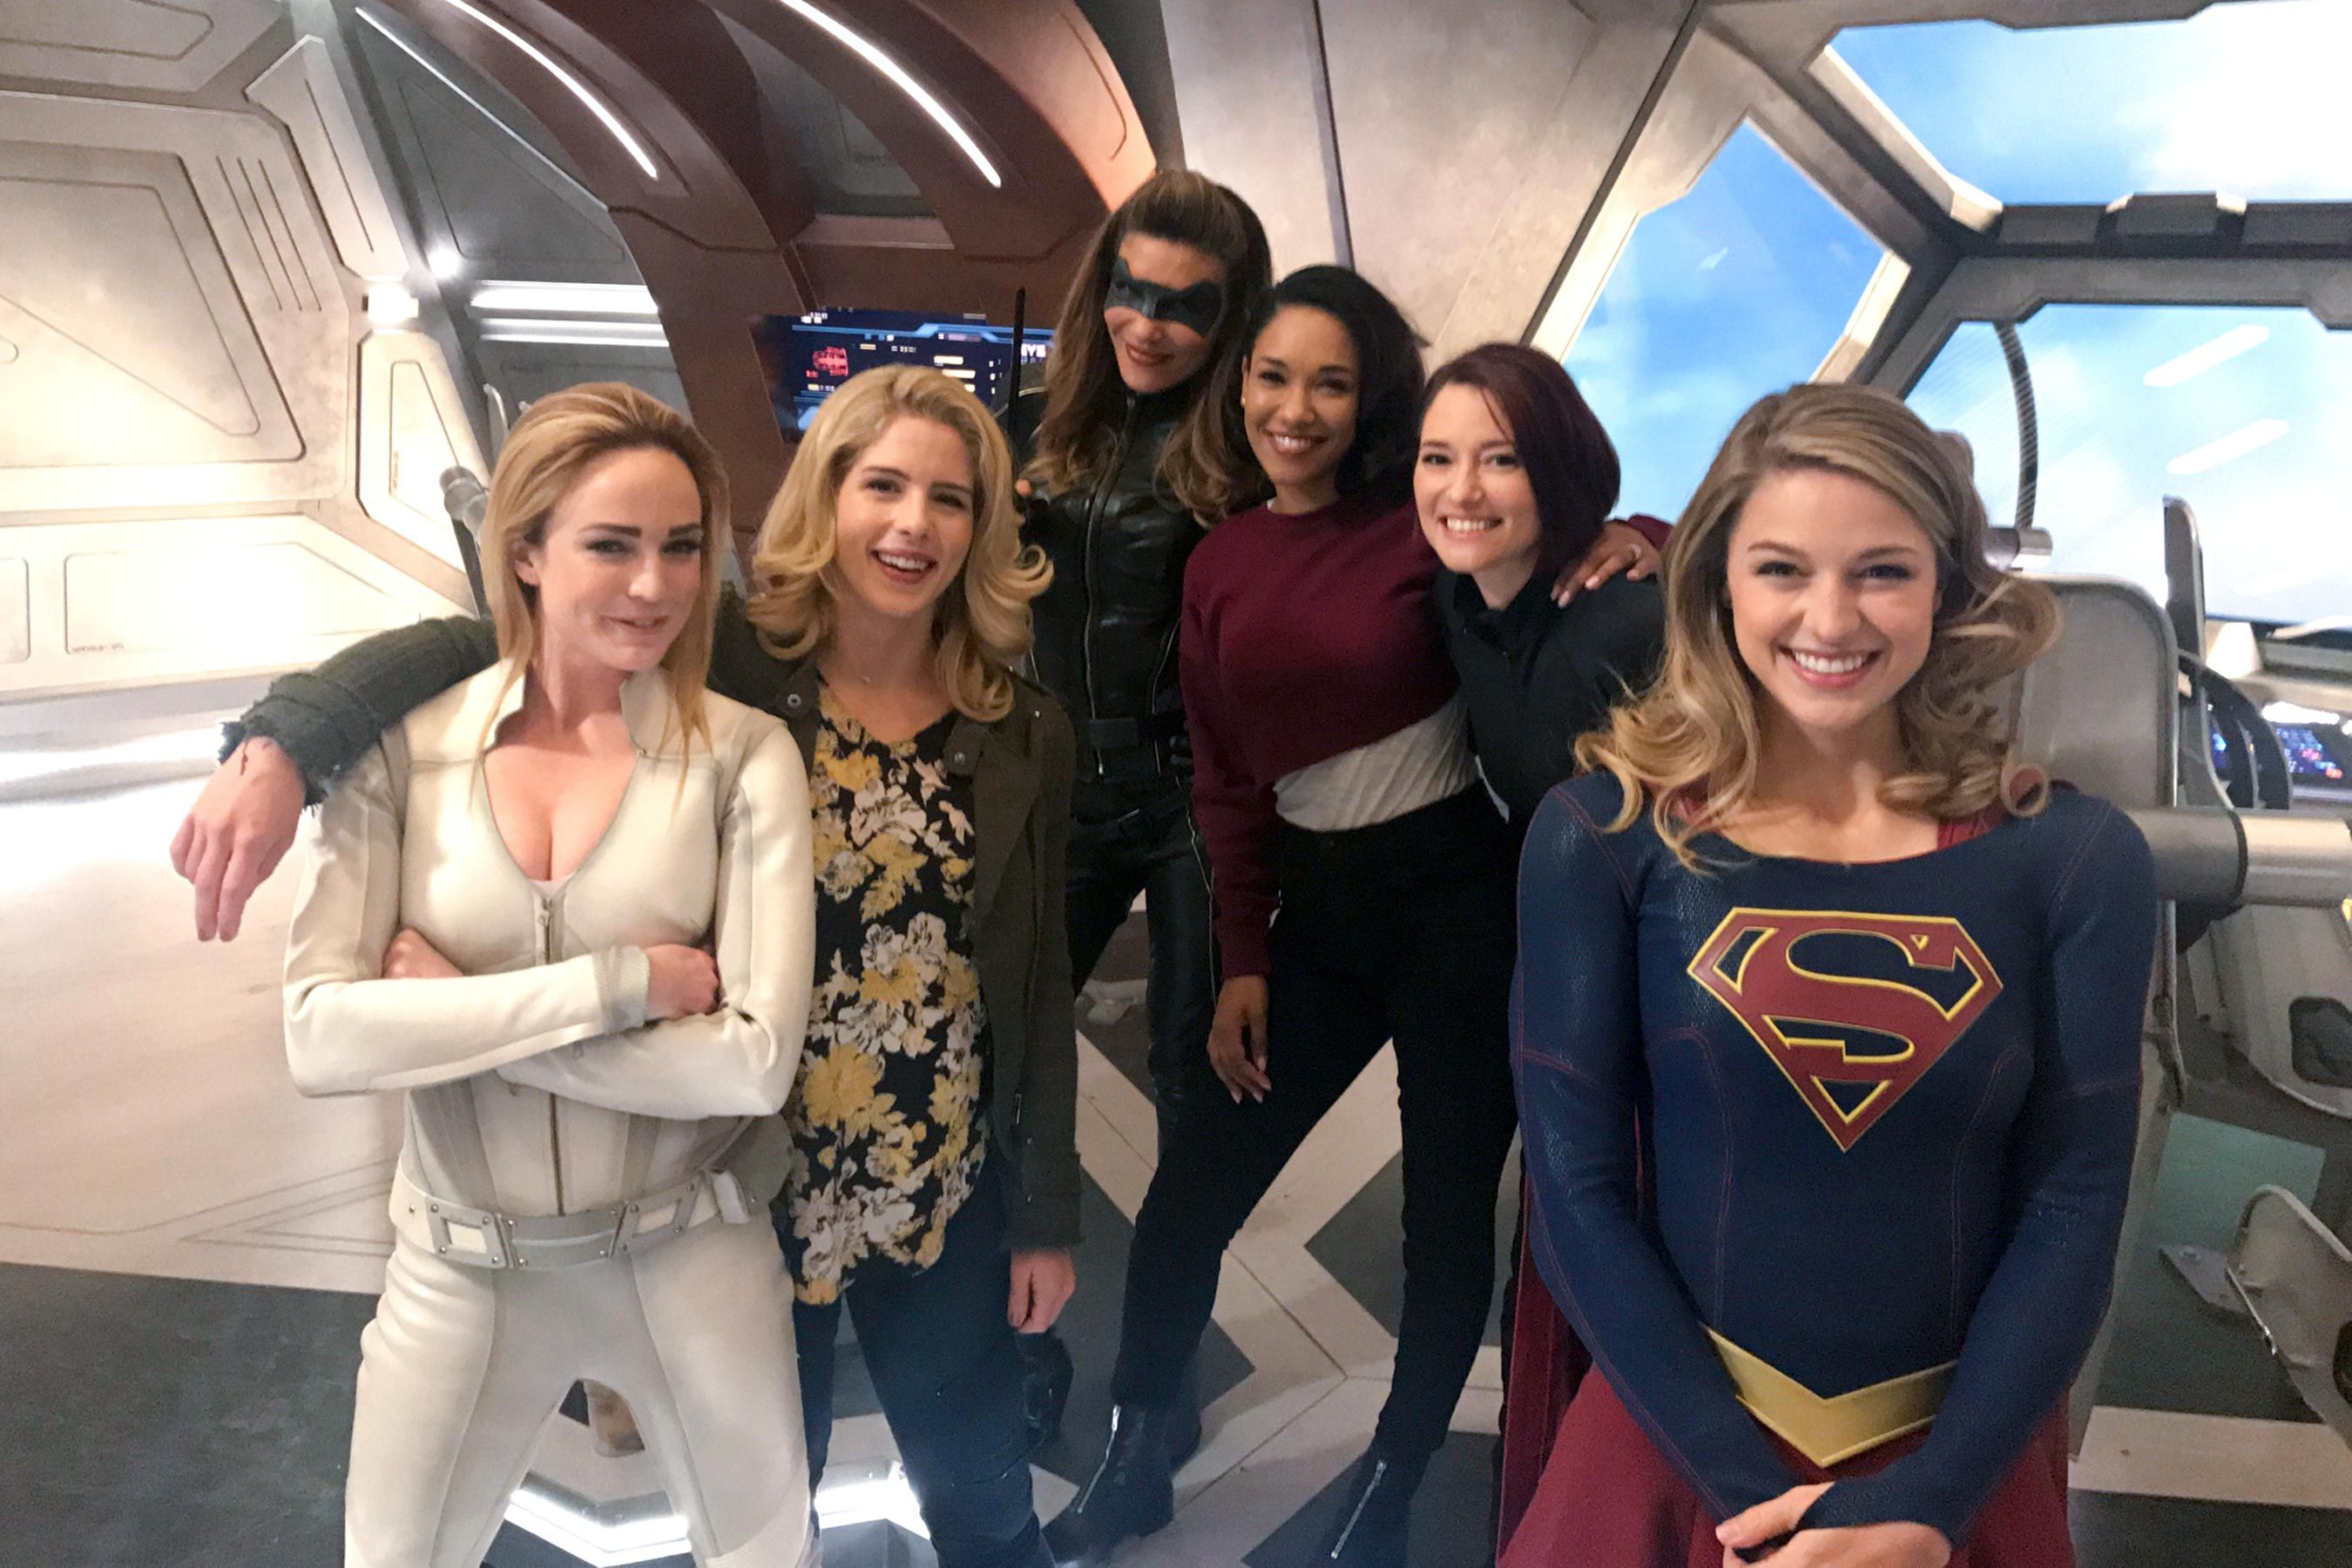 Arrowverse Stars Caity Lotz And Candice Patton Aim To Bring Women